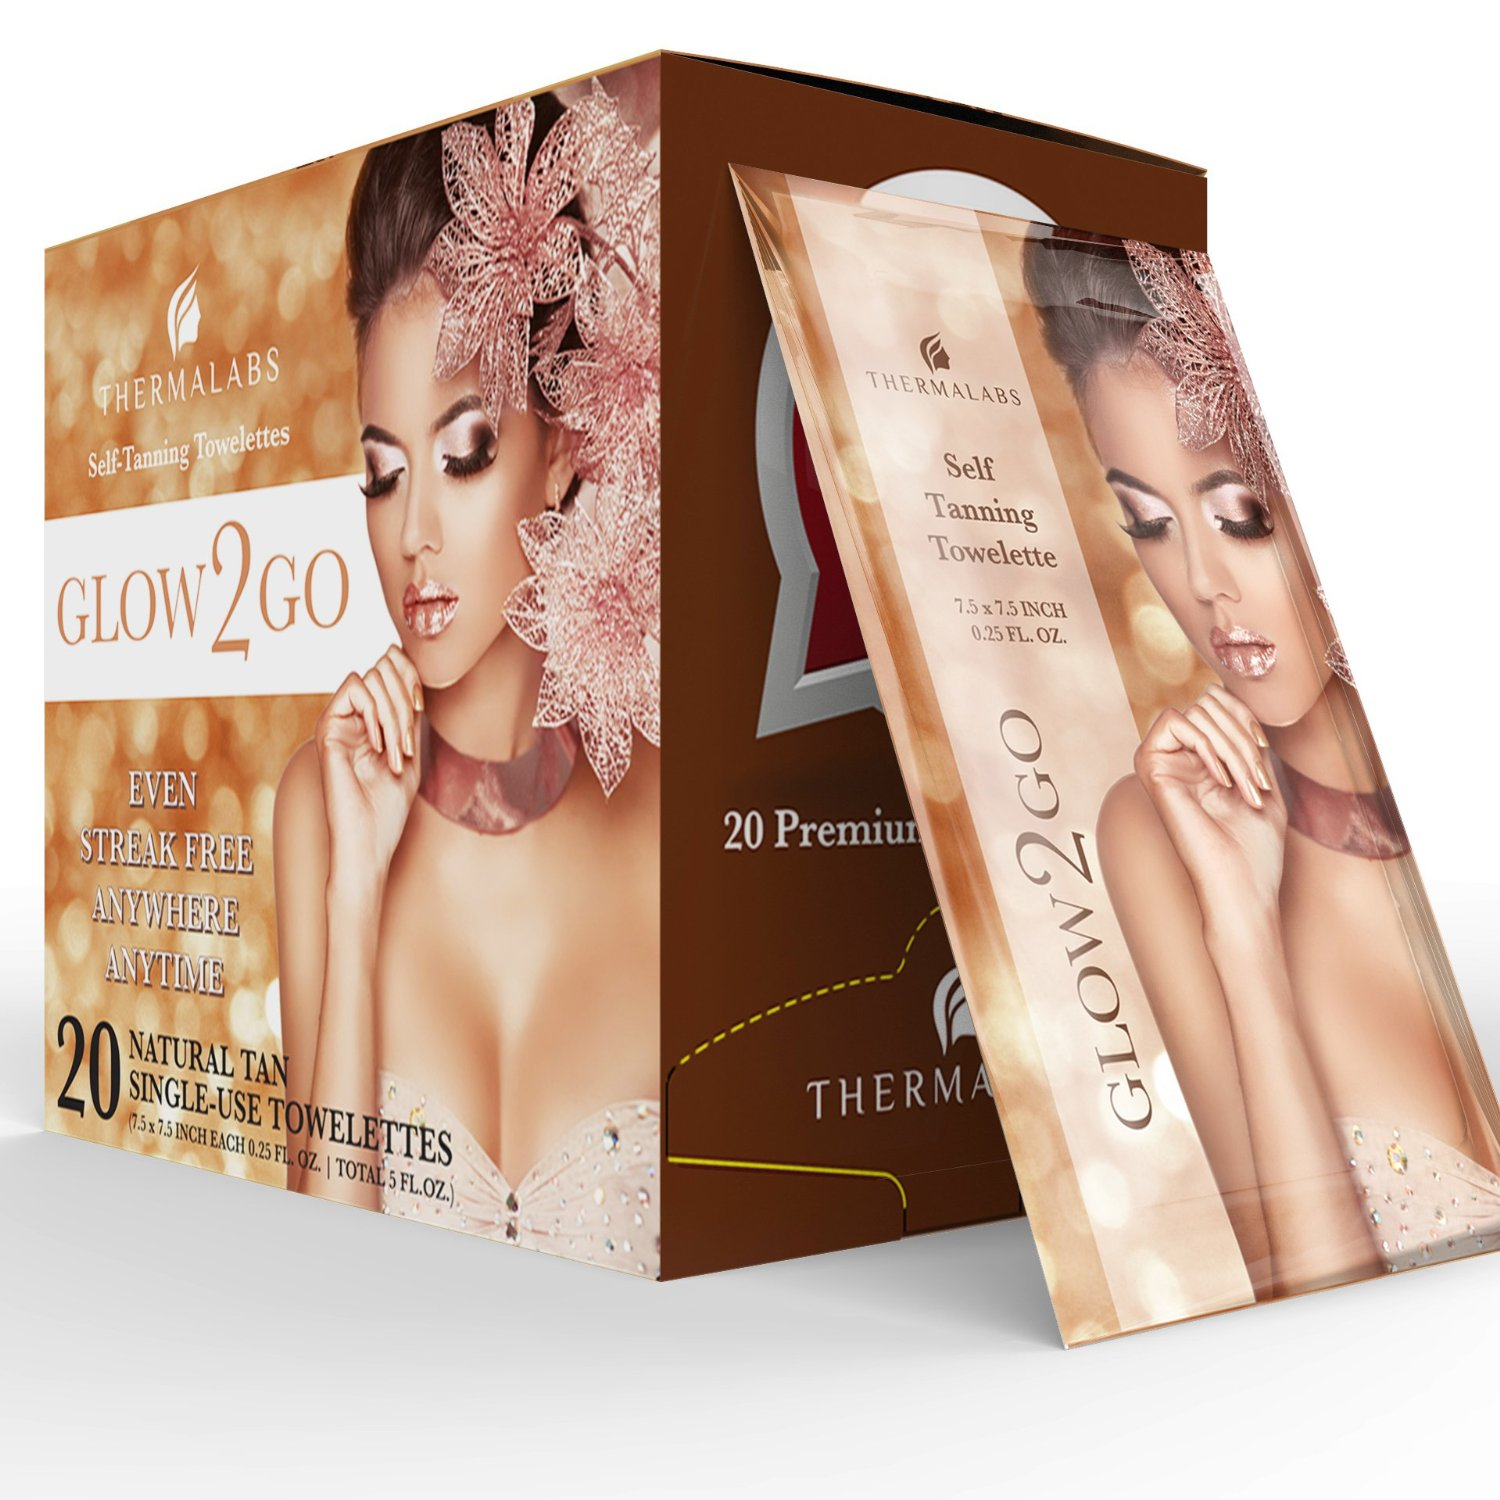 Win a Box of Glow2Go from Thermalabs in the Be Our Valentine Giveaway Hop! Ends 2/6 #RWMevent